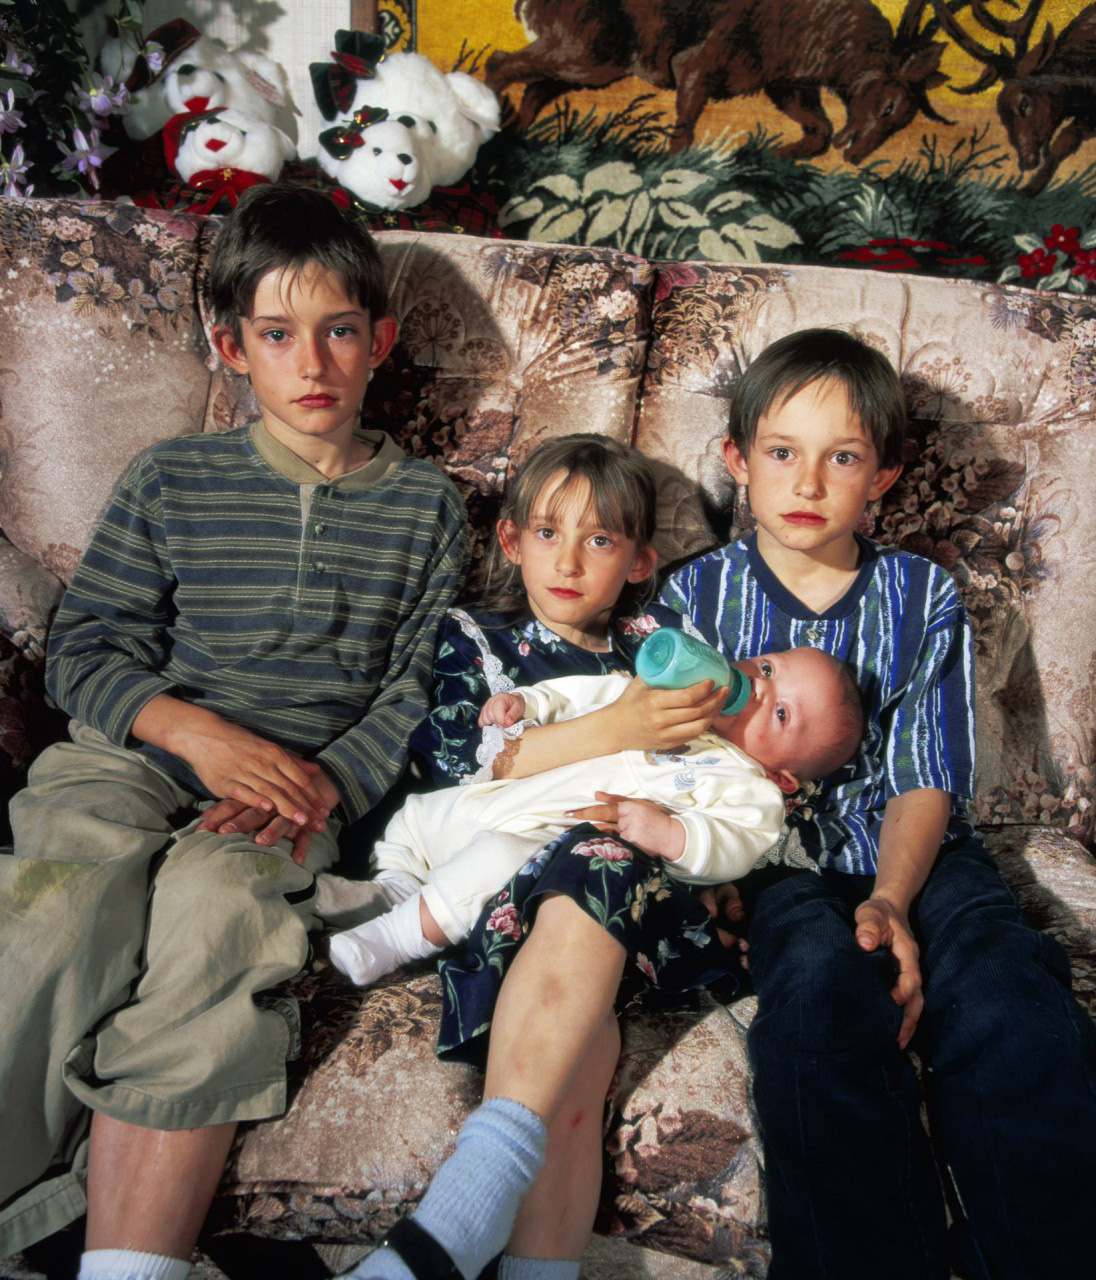 Peggy McDowell was six months pregnant when she suffered a massive cerebral aneurysm and was declared brain dead. She was kept on life support for two months until the birth of her son by cesarean section. The baby (shown with brothers Eddie and Charlie and sister Laura) was named Joshua Moses because his family believed he was a miracle baby. Photo copyright - Robbie McClaran